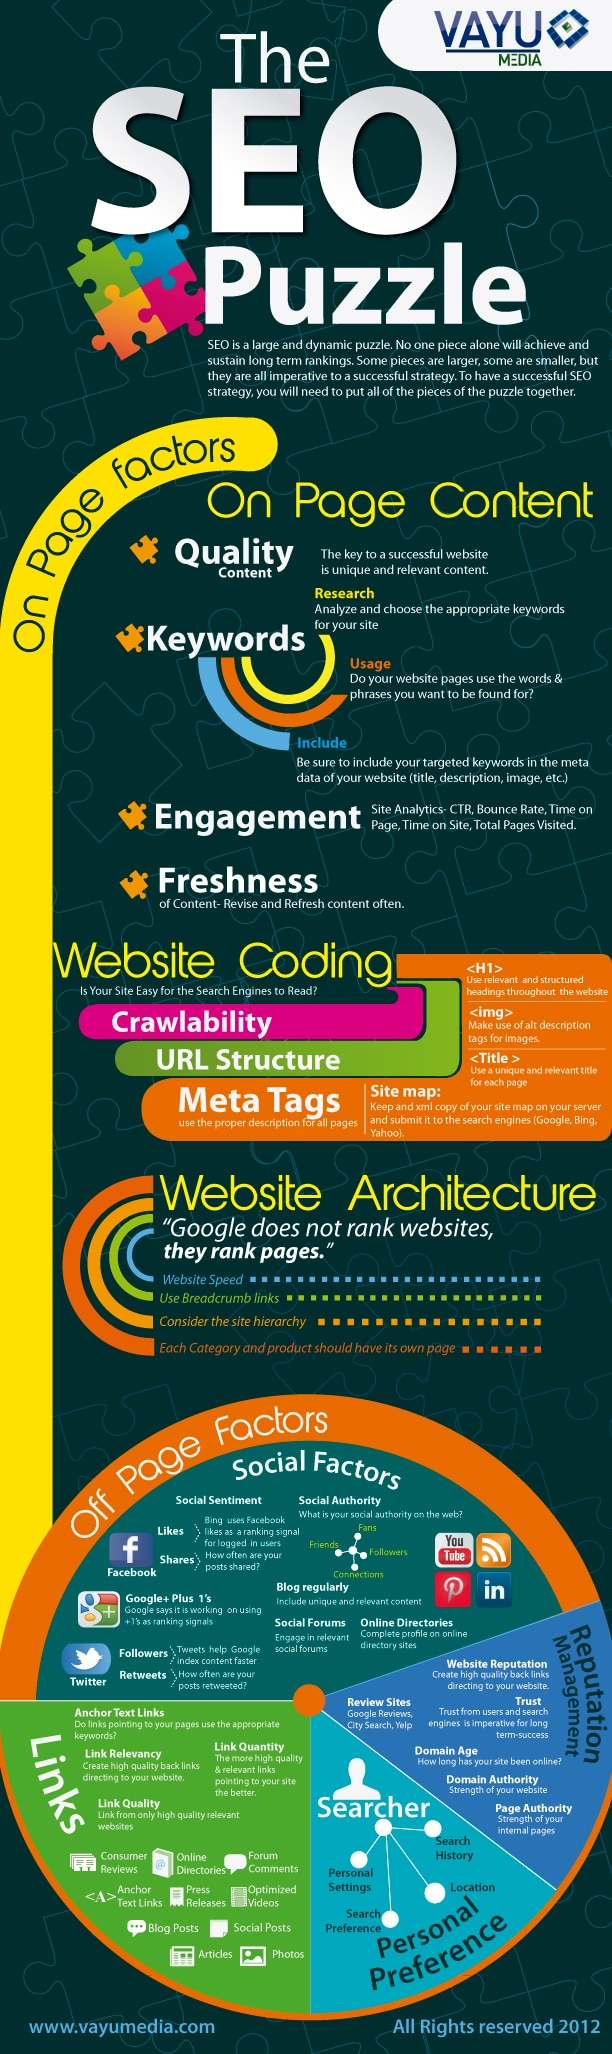 the-seo-puzzle-infographic